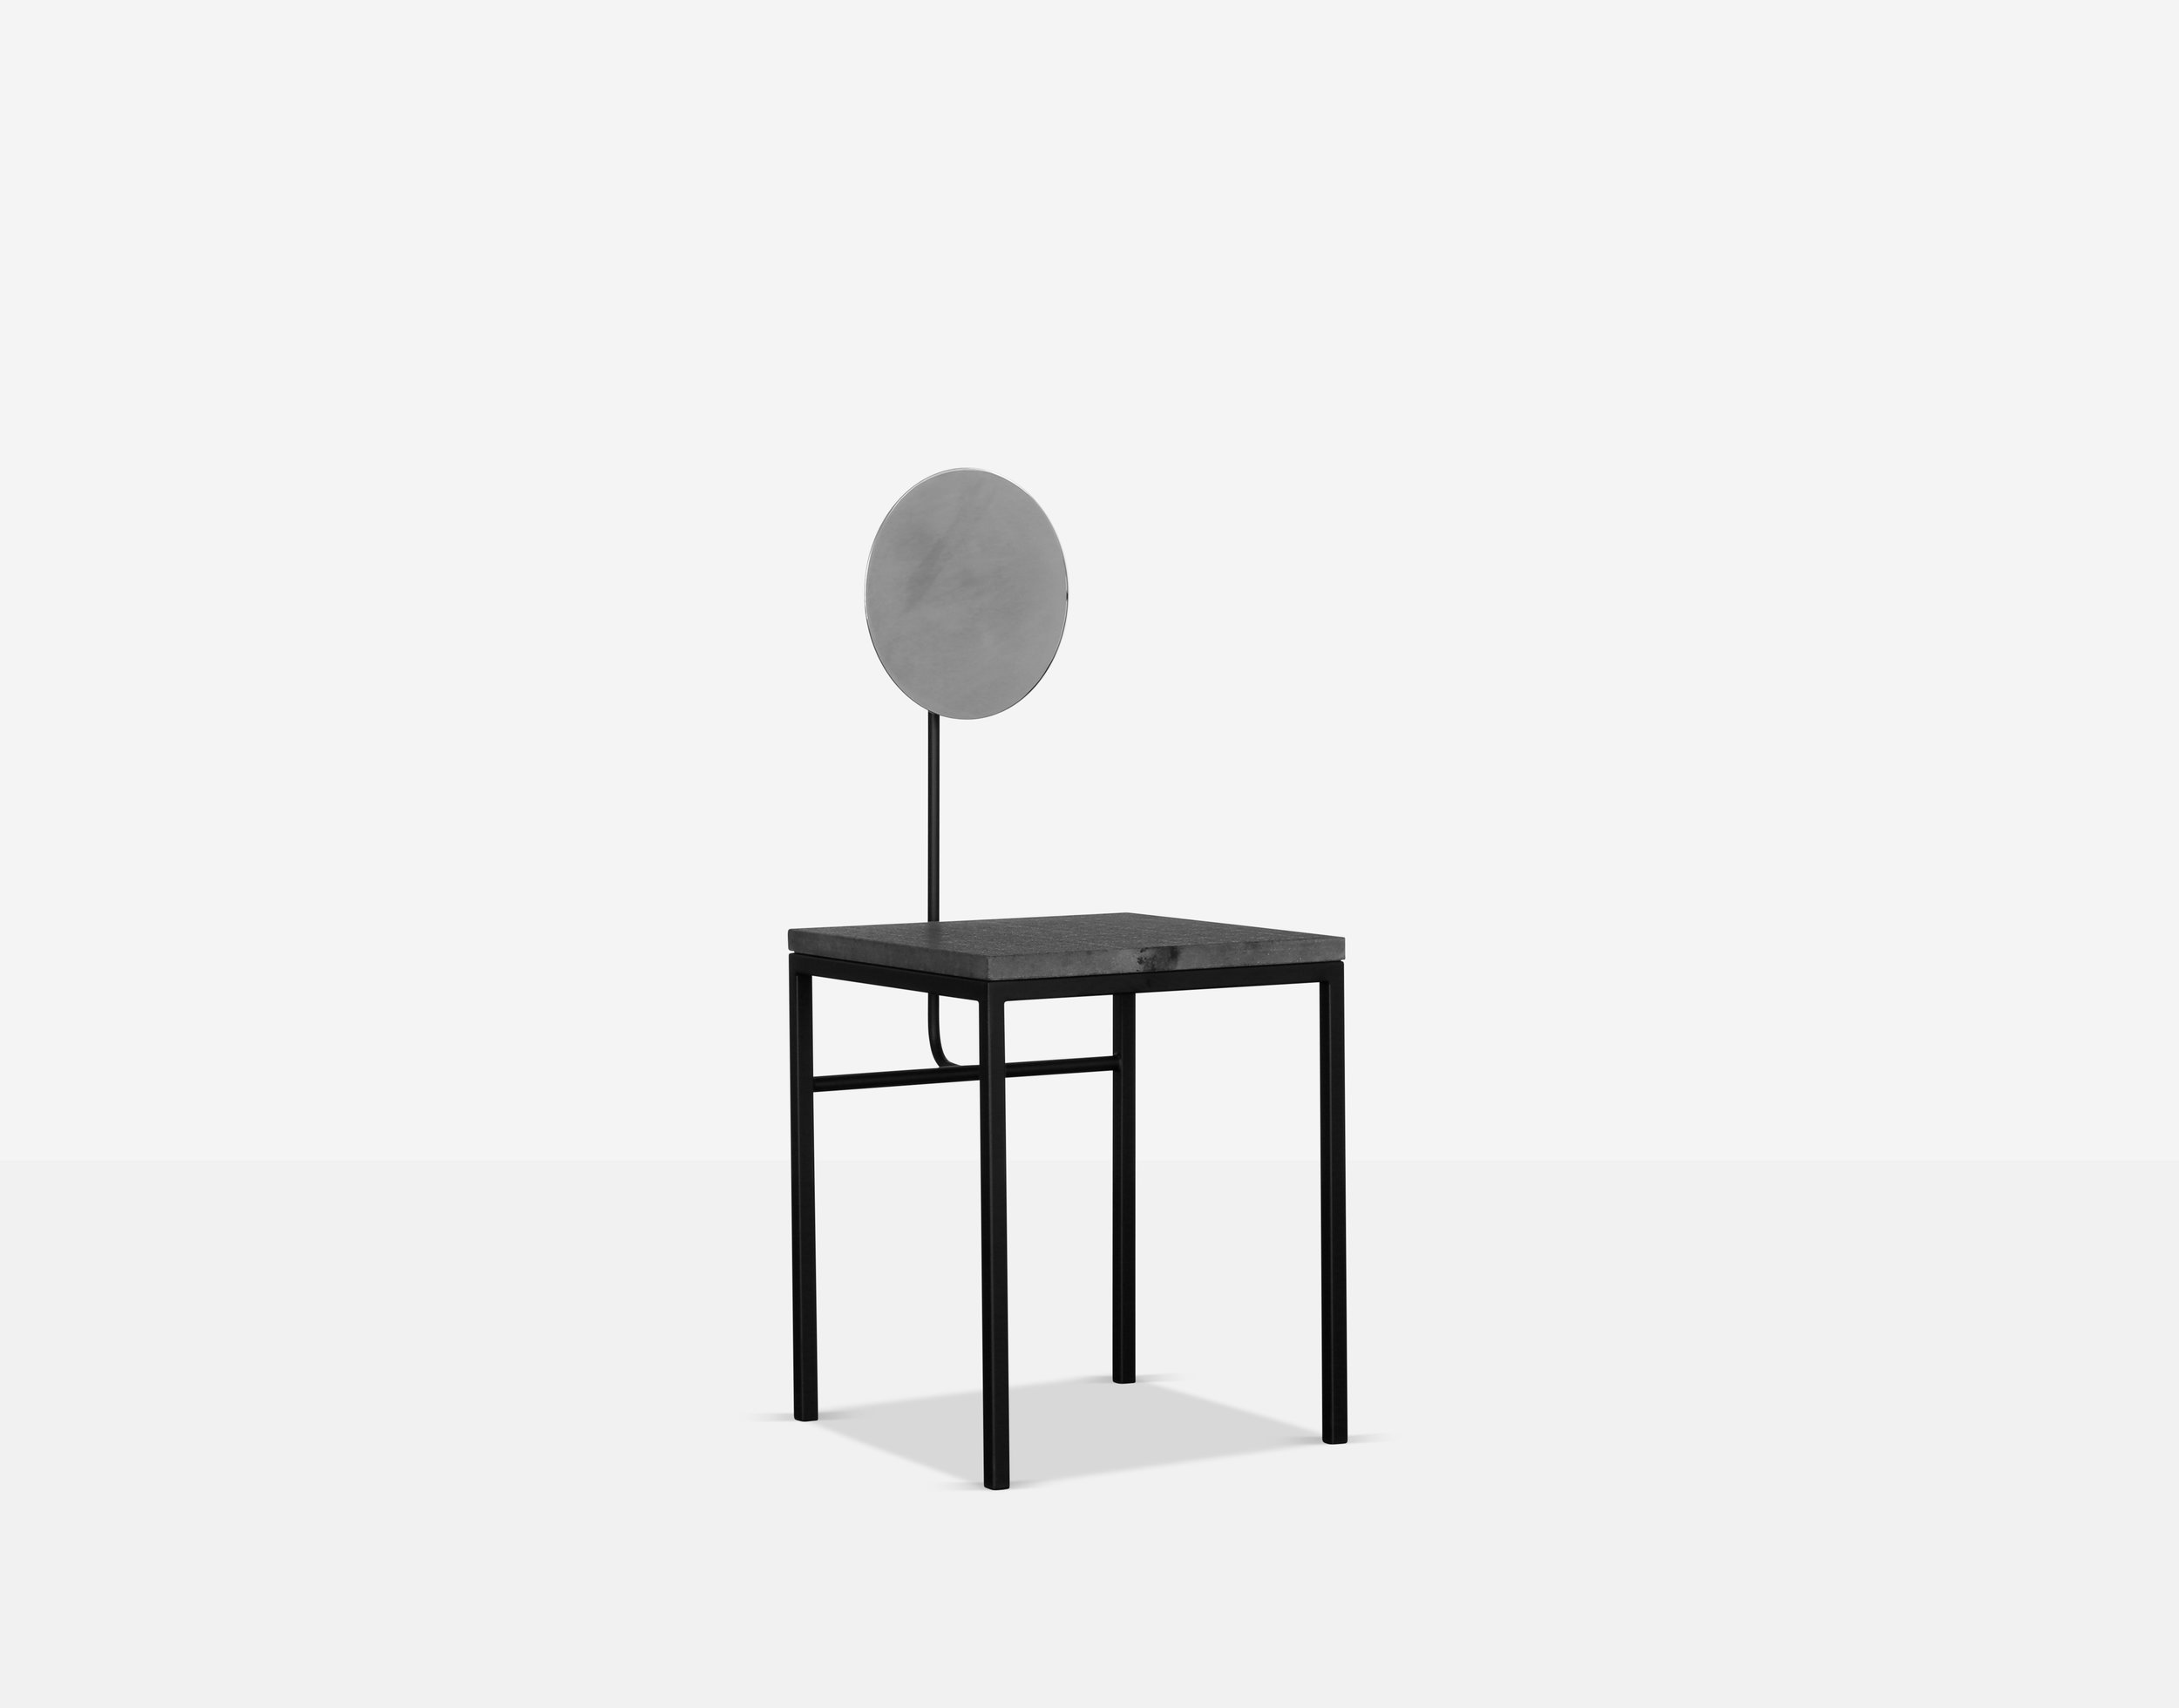 Luteca_SM_Kiin-Chair_Black-Chrome_FP-W.jpg